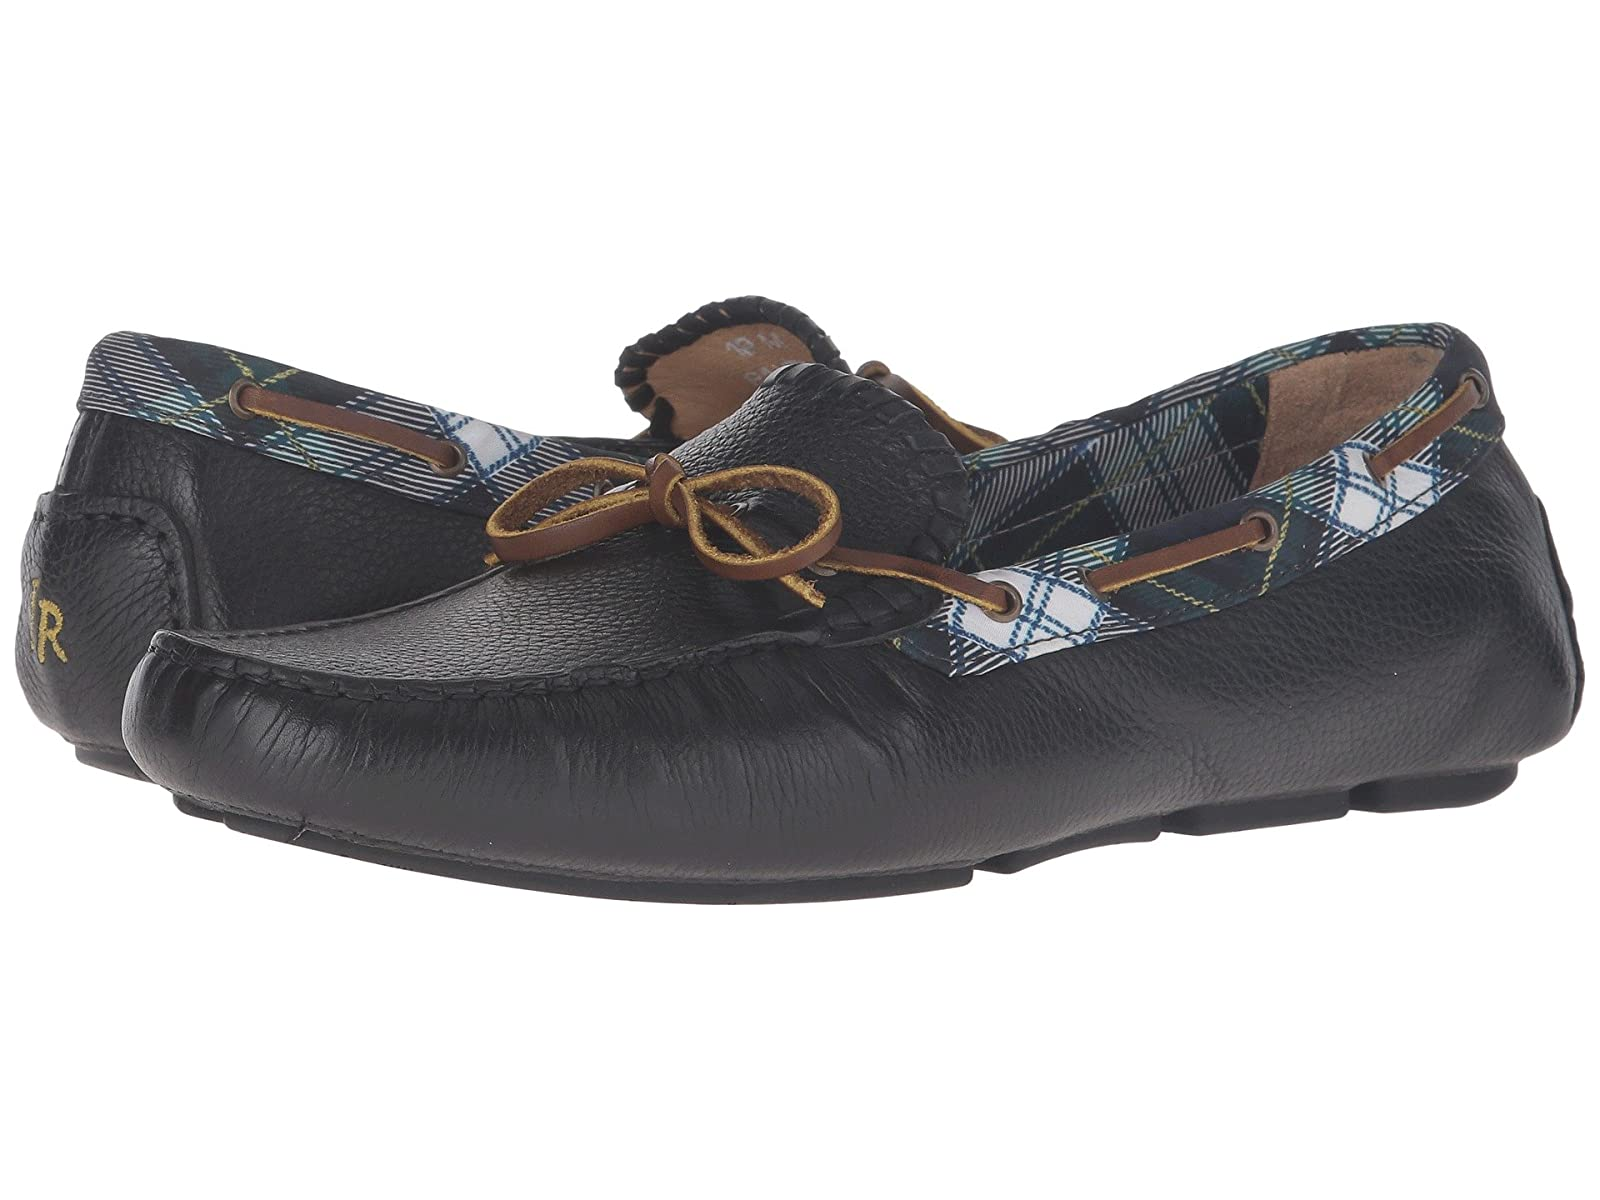 Jack Rogers PaxtonCheap and distinctive eye-catching shoes